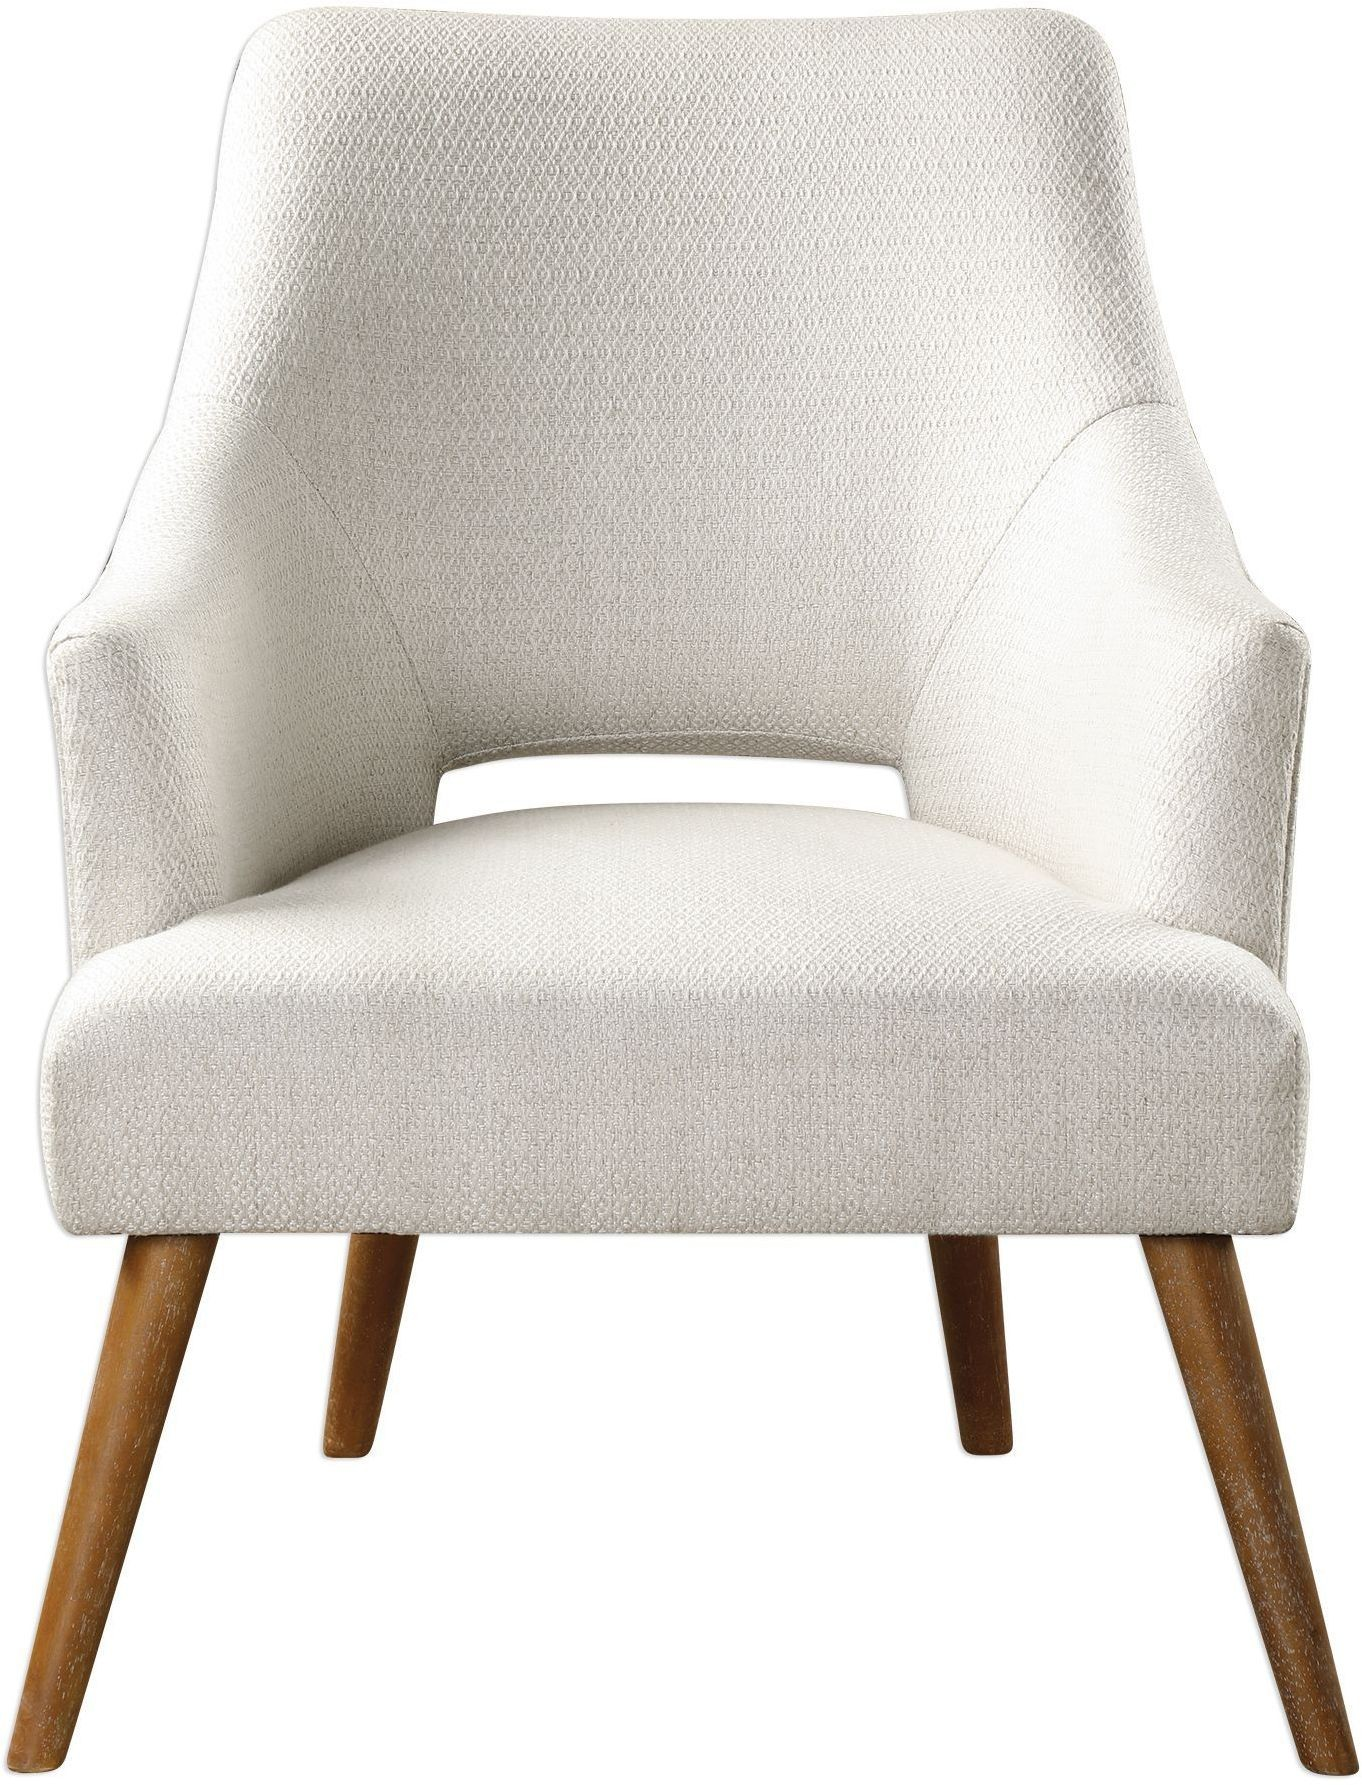 Retro Accent Chairs Dree Retro Accent Chair From Uttermost Coleman Furniture